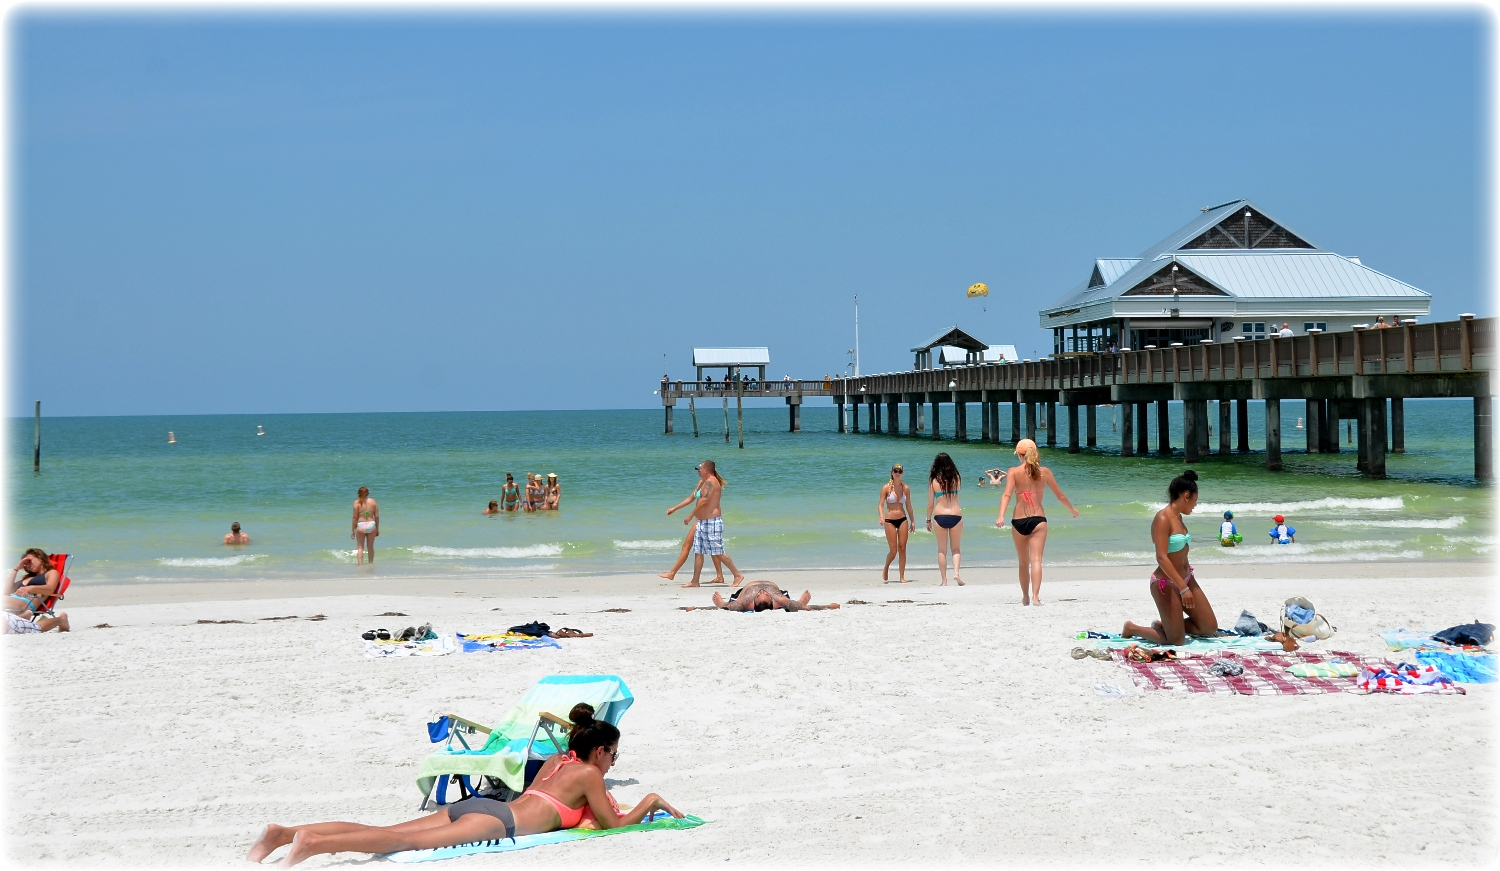 naples fl beaches map with Clearwater Fl Ybiycje2yv 7cq3d0sbn6ryfwmjnavmpkk4aeumuz3is8 on Tiburon Metros Banista Nueva Zelanda 0 873513180 likewise Vacation Packages G34230 Fort Myers Florida Vacations besides Auberge Condos Fort Lauderdale Beach furthermore Southwest 20Florida in addition Marco Island.